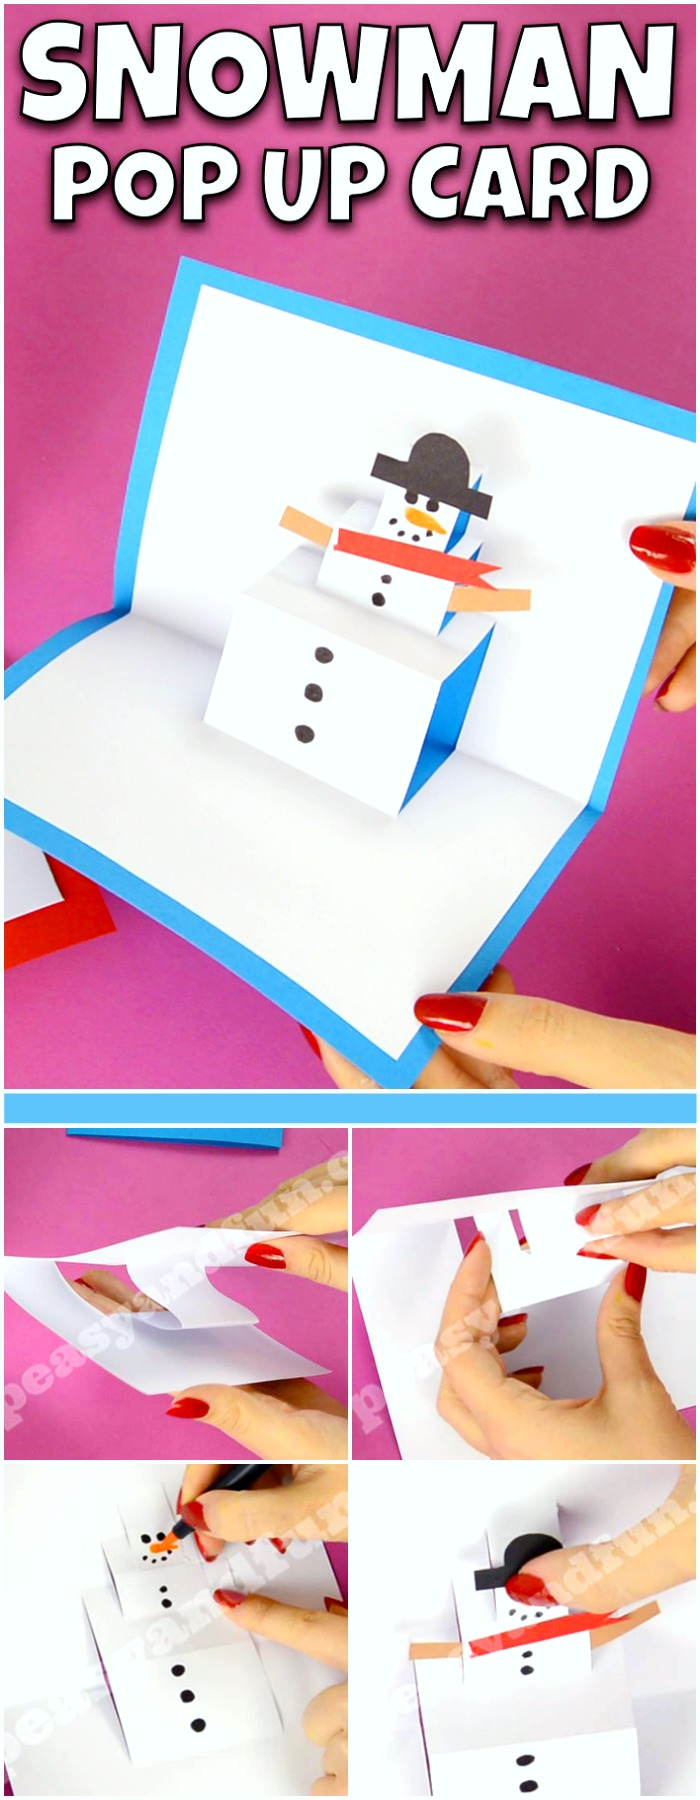 Snowman Christmas Cards Ideas.Snowman Pop Up Card Easy Peasy And Fun